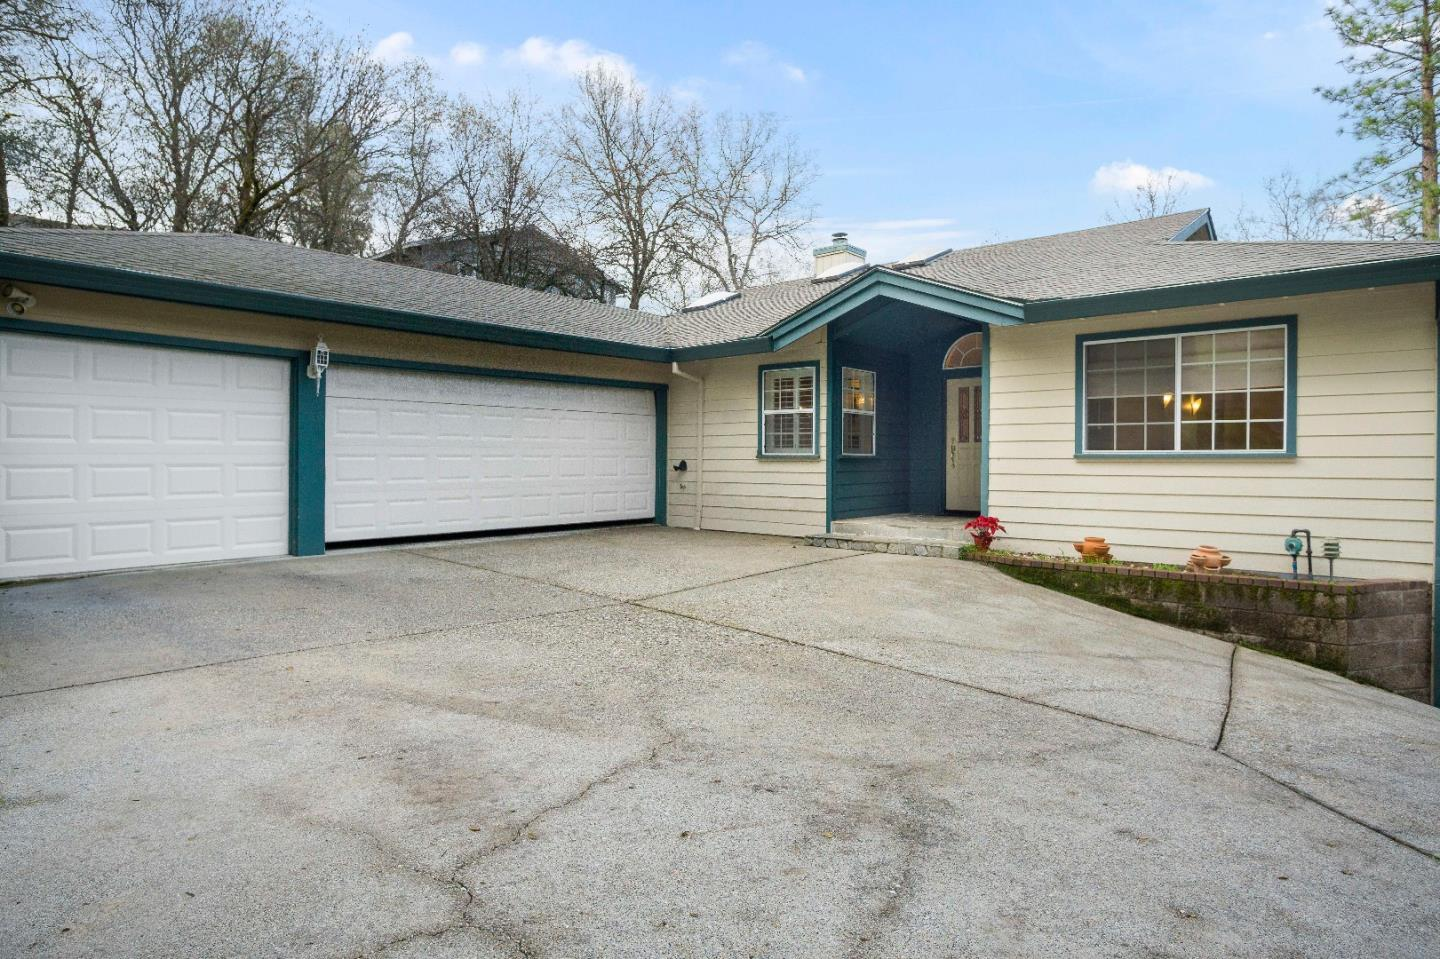 Single Family Home for Sale at 17867 Chaparral Drive 17867 Chaparral Drive Penn Valley, California 95946 United States